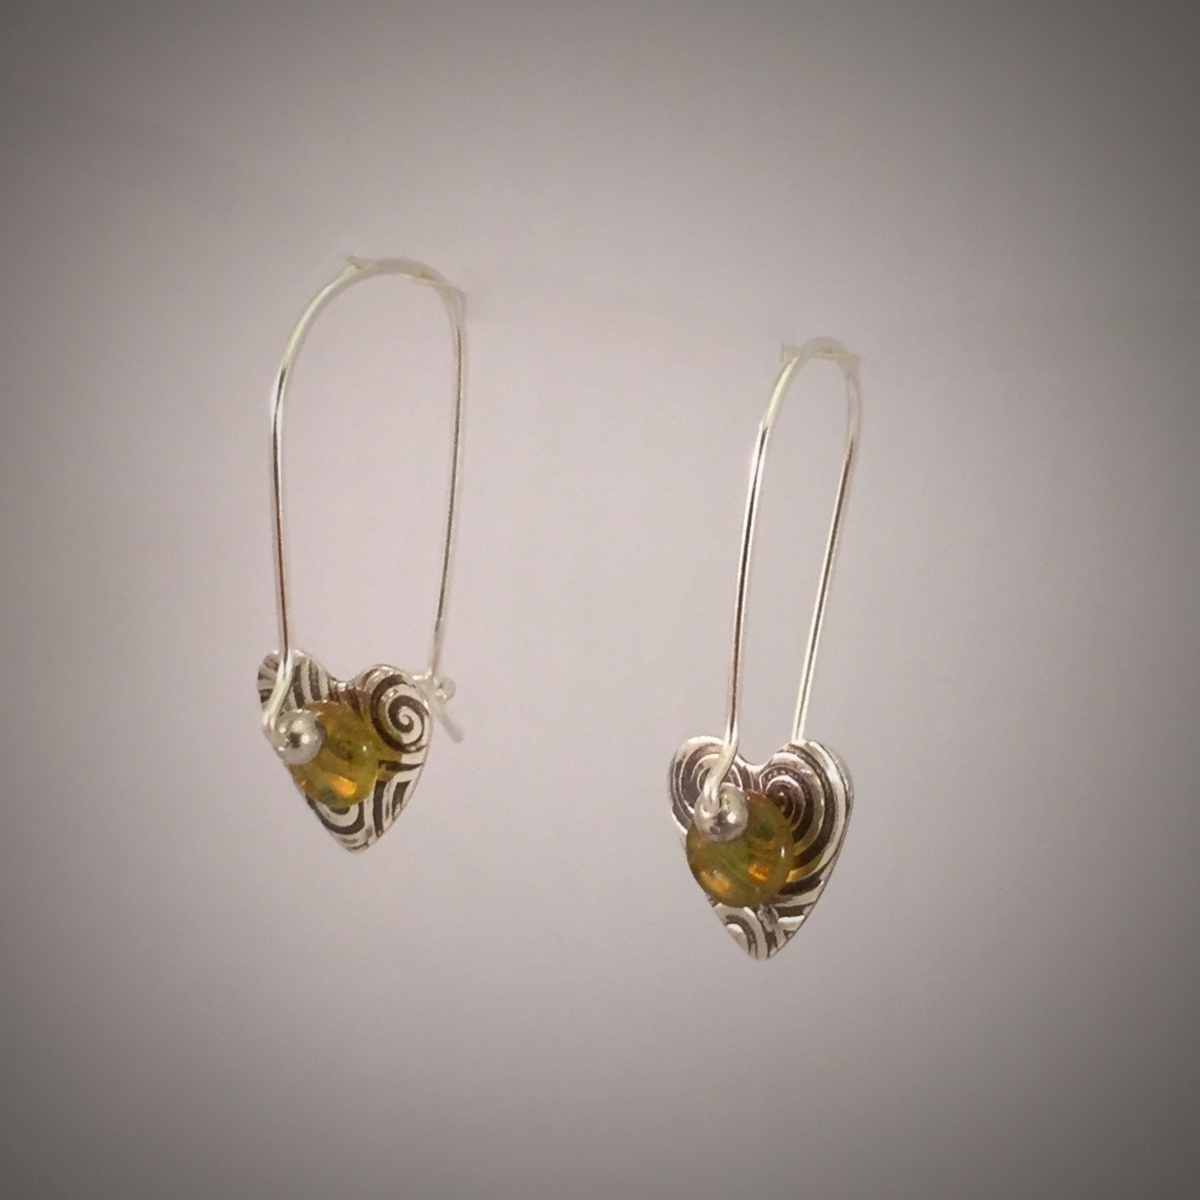 Patterned Silver Small Heart Clasp Earrings (large view)